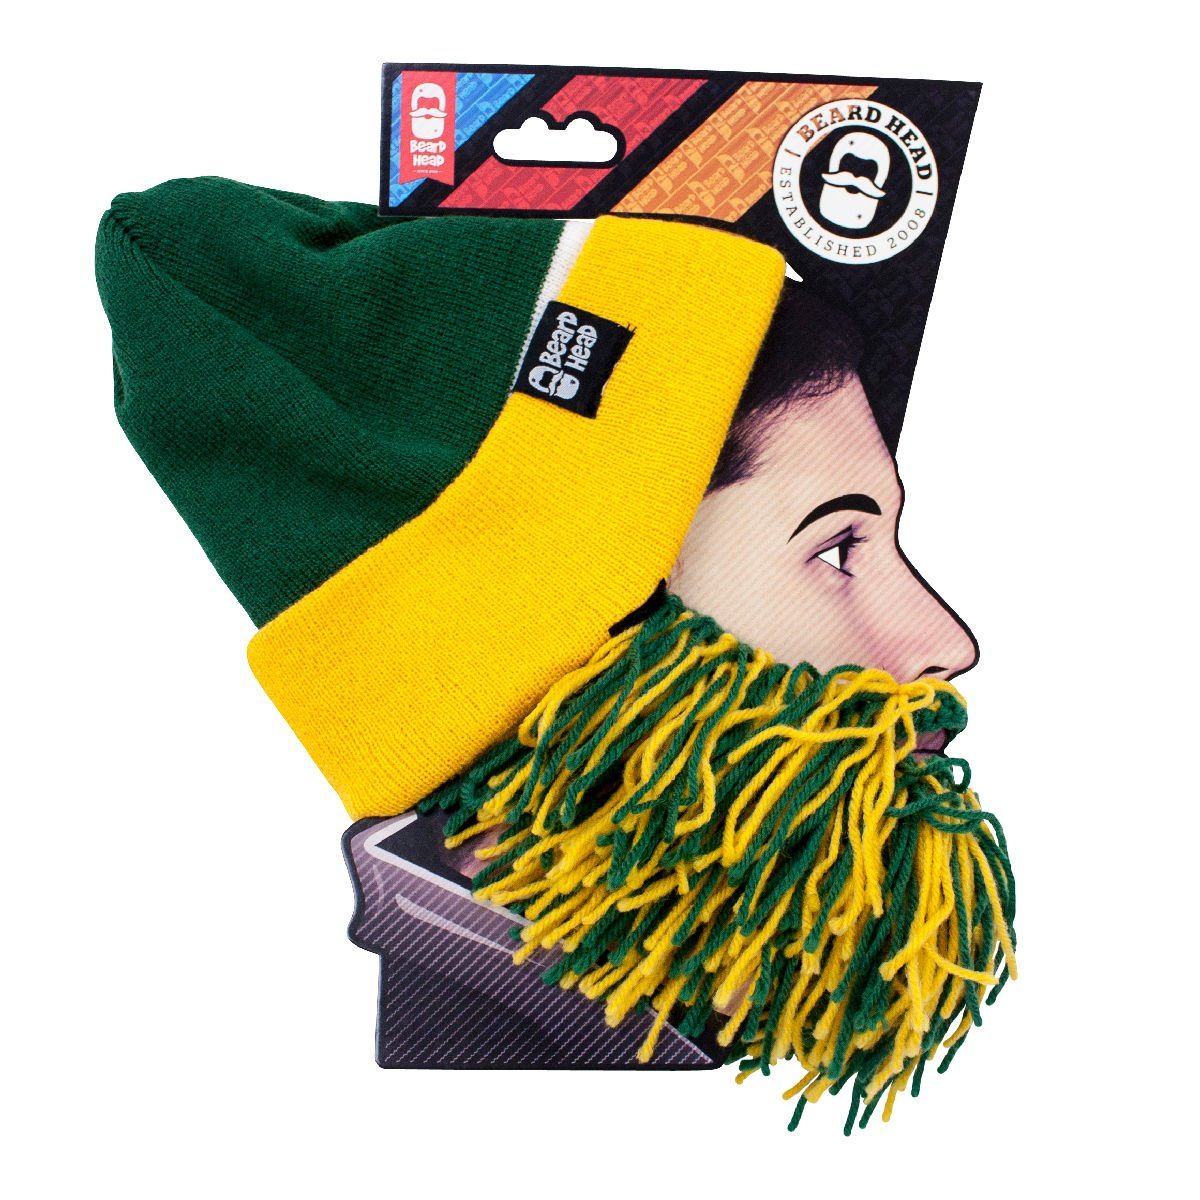 Beard Head Tailgate Series Knit Beanie w Beard Hat